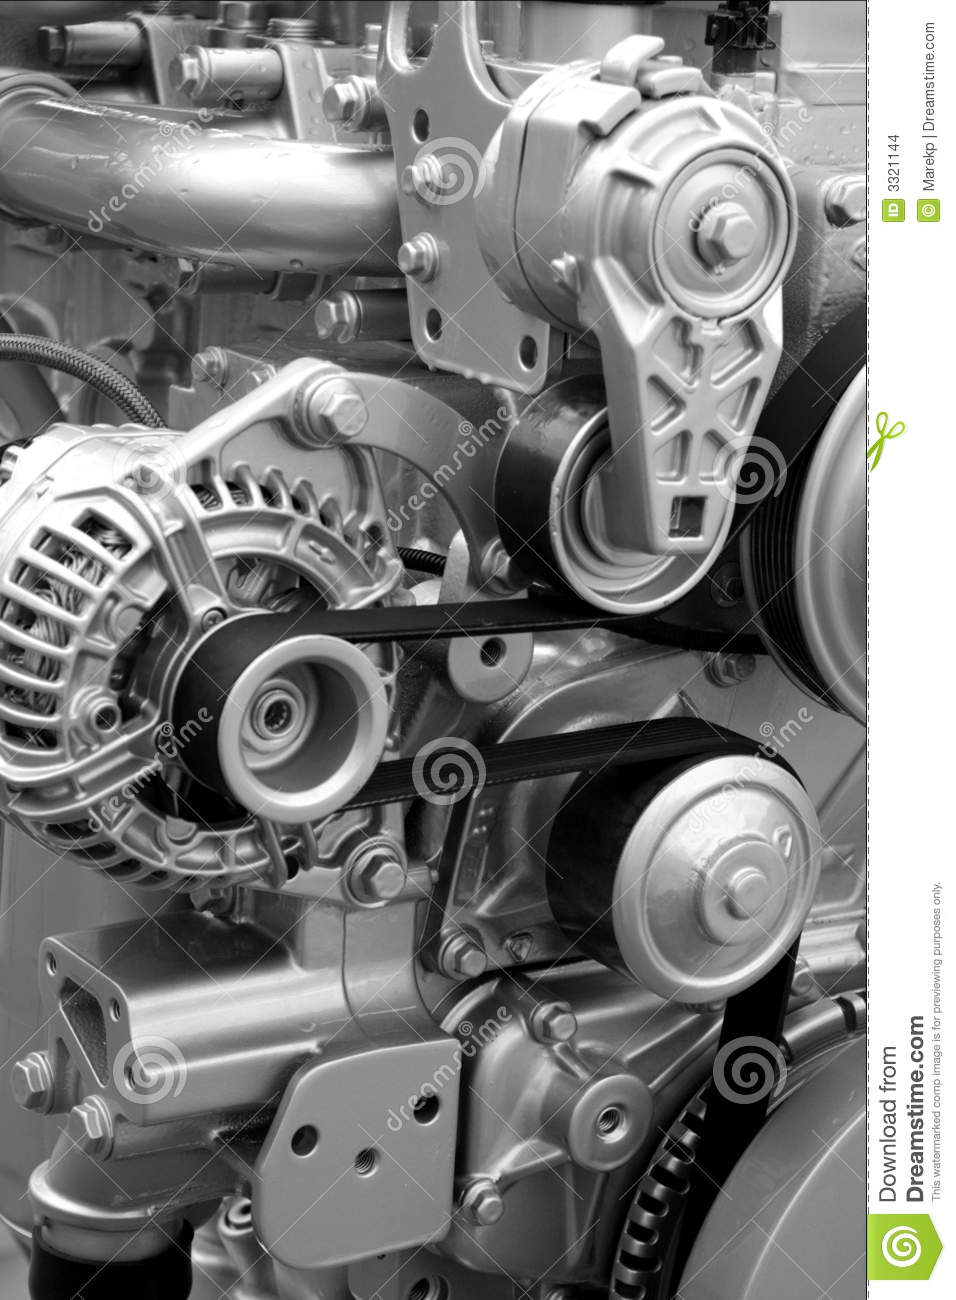 Locomotive Spare Parts : Engine parts and components stock photo image